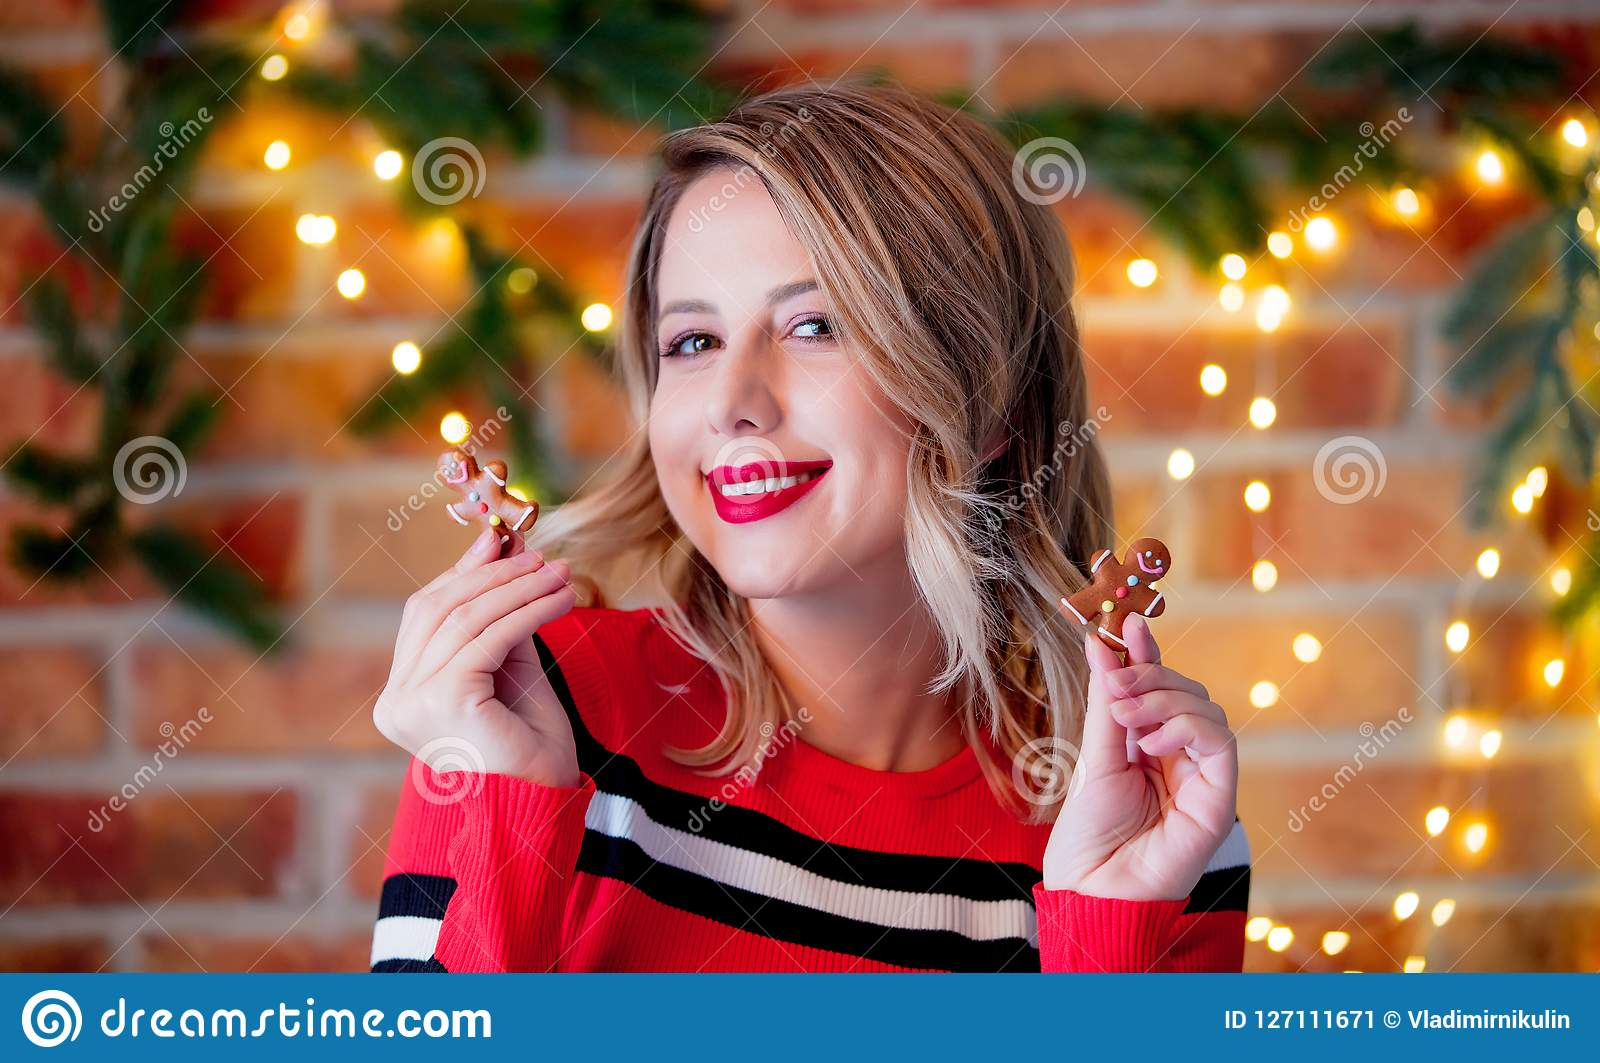 Girl in red striped sweater with gingerbread man